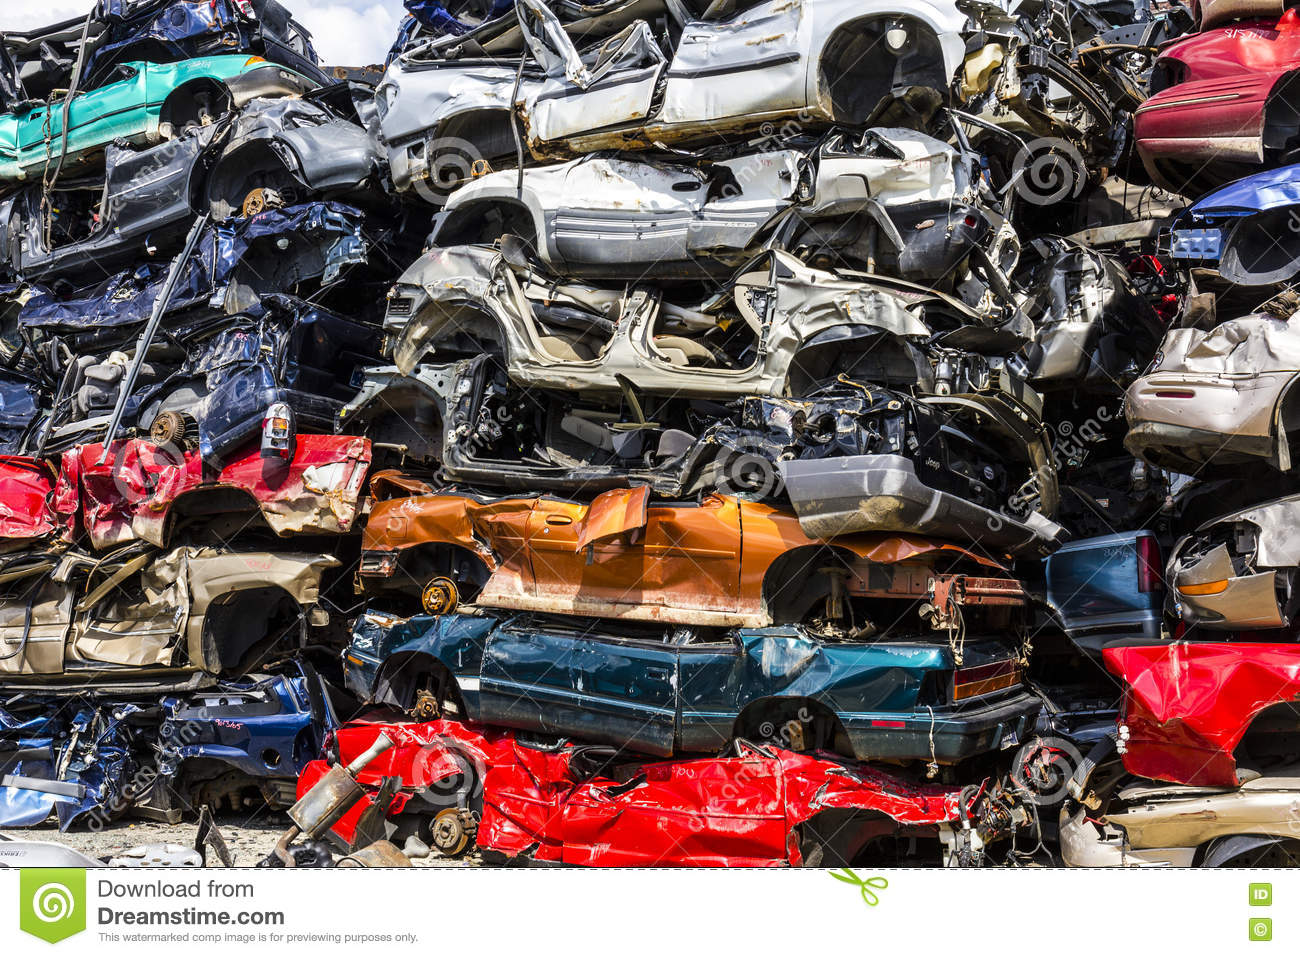 Scrap Metal Prices Cars >> Indianapolis - Circa August 2016 - A Pile Of Stacked Junk Cars - Discarded Junk Cars Piled Up ...